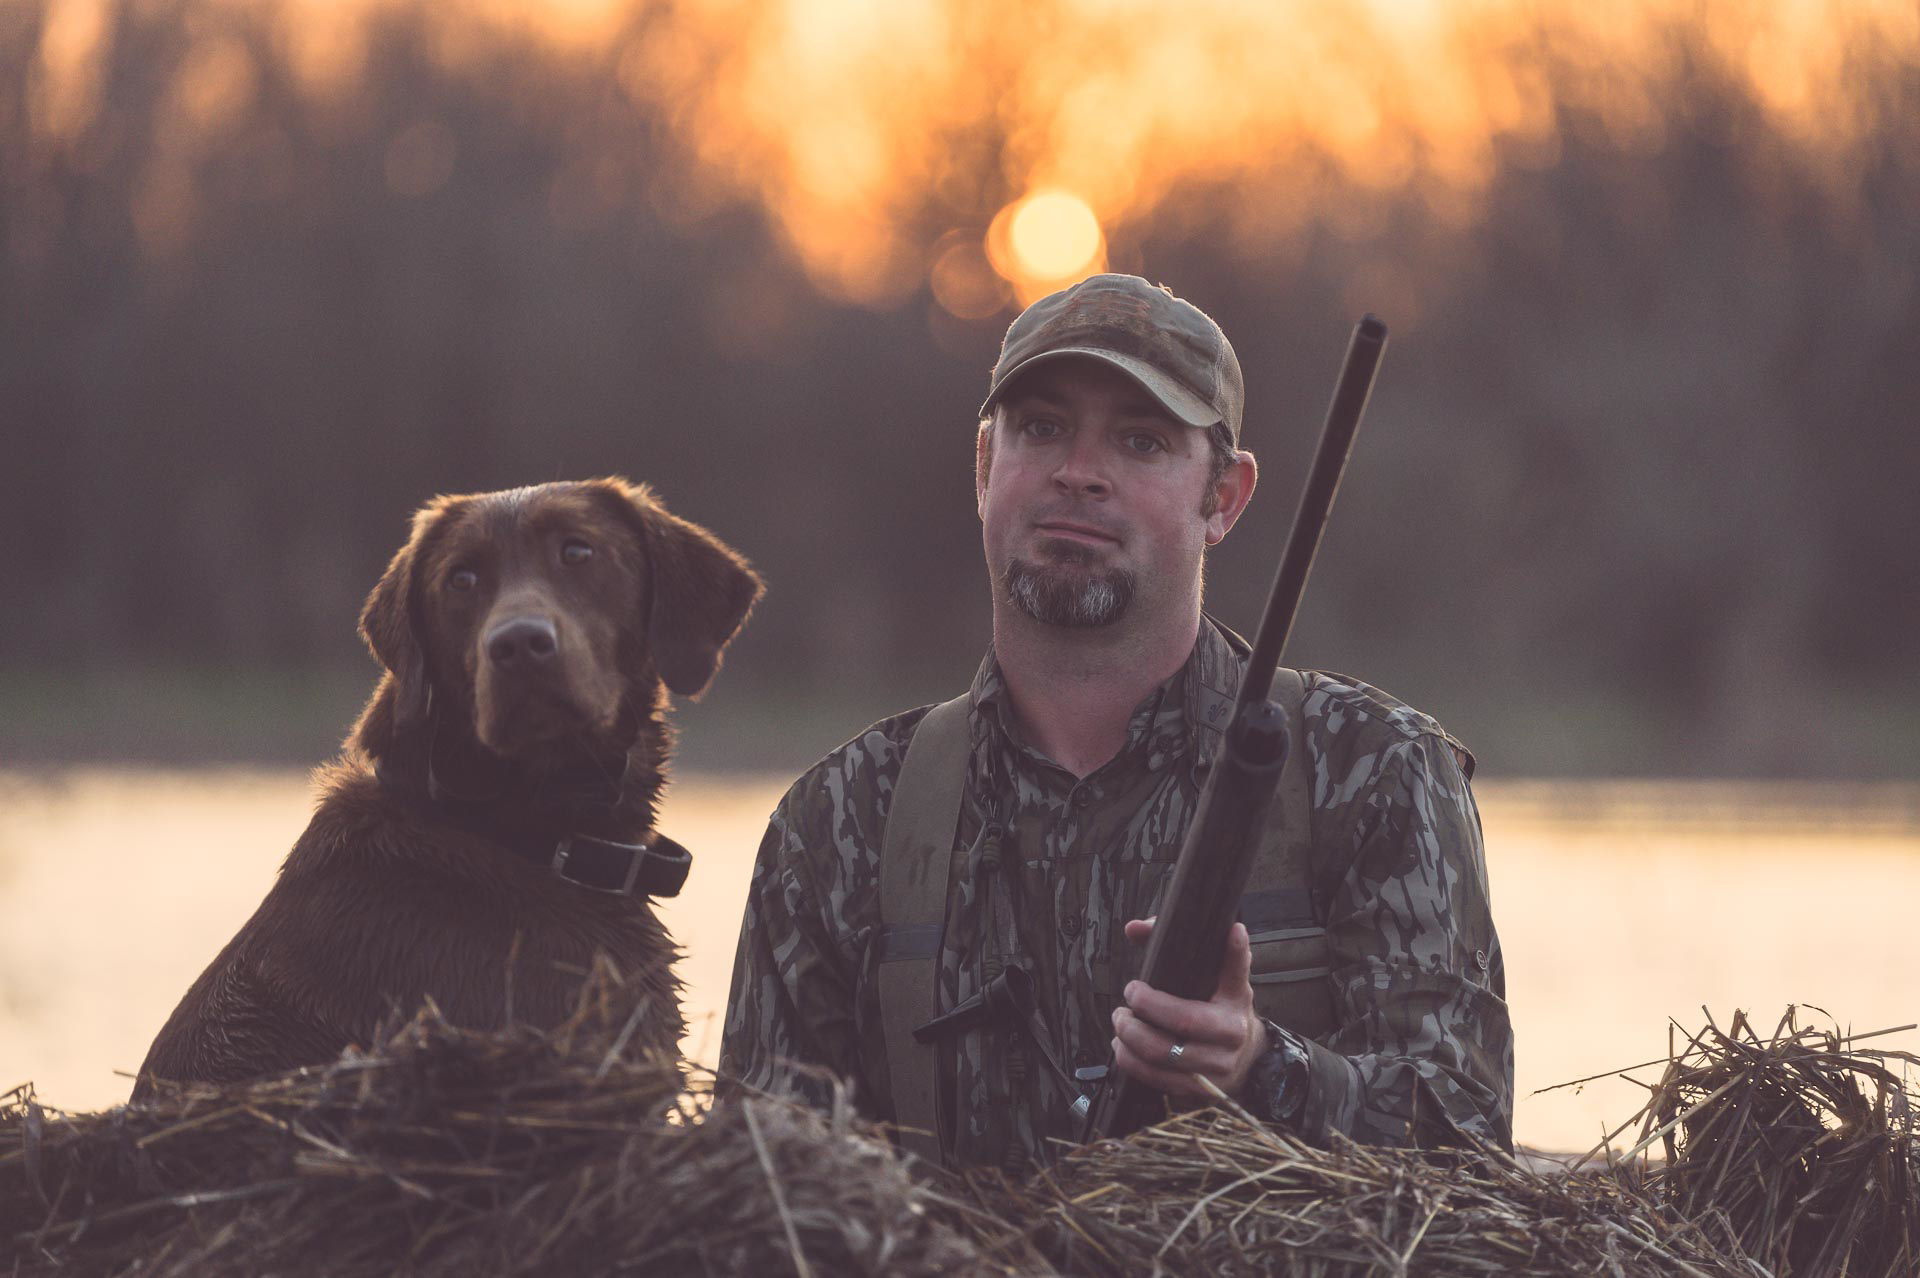 Richard, duck hunting guide and dog trainer with his prized chocolate lab in a floating duck blind at sunset, Honey Brake. © Tony Bynum